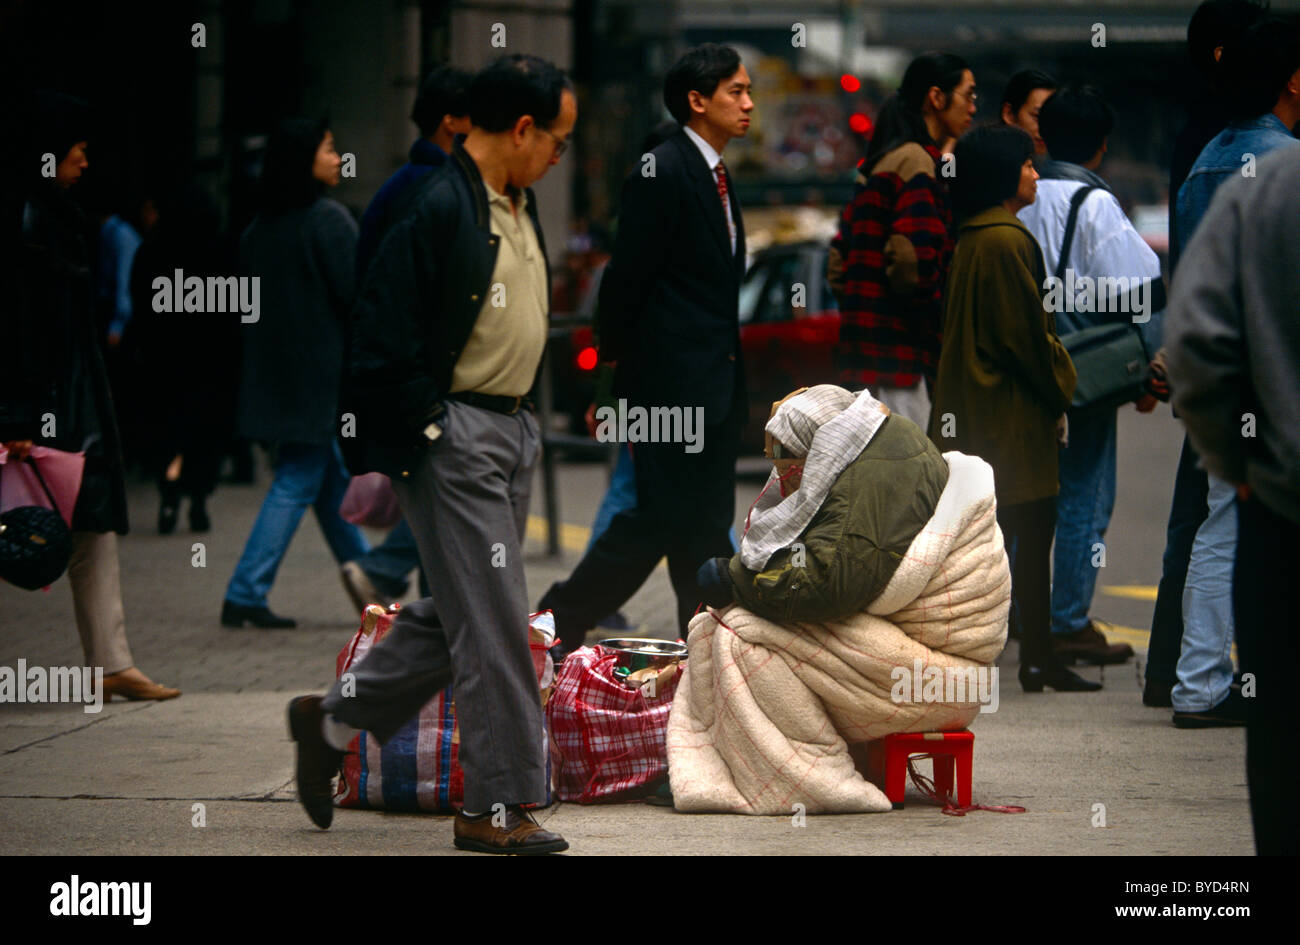 Passers-by ignore destitute bag-lady in Hong Kong's Tsim Sha Tsui street on the Kowloon side. - Stock Image